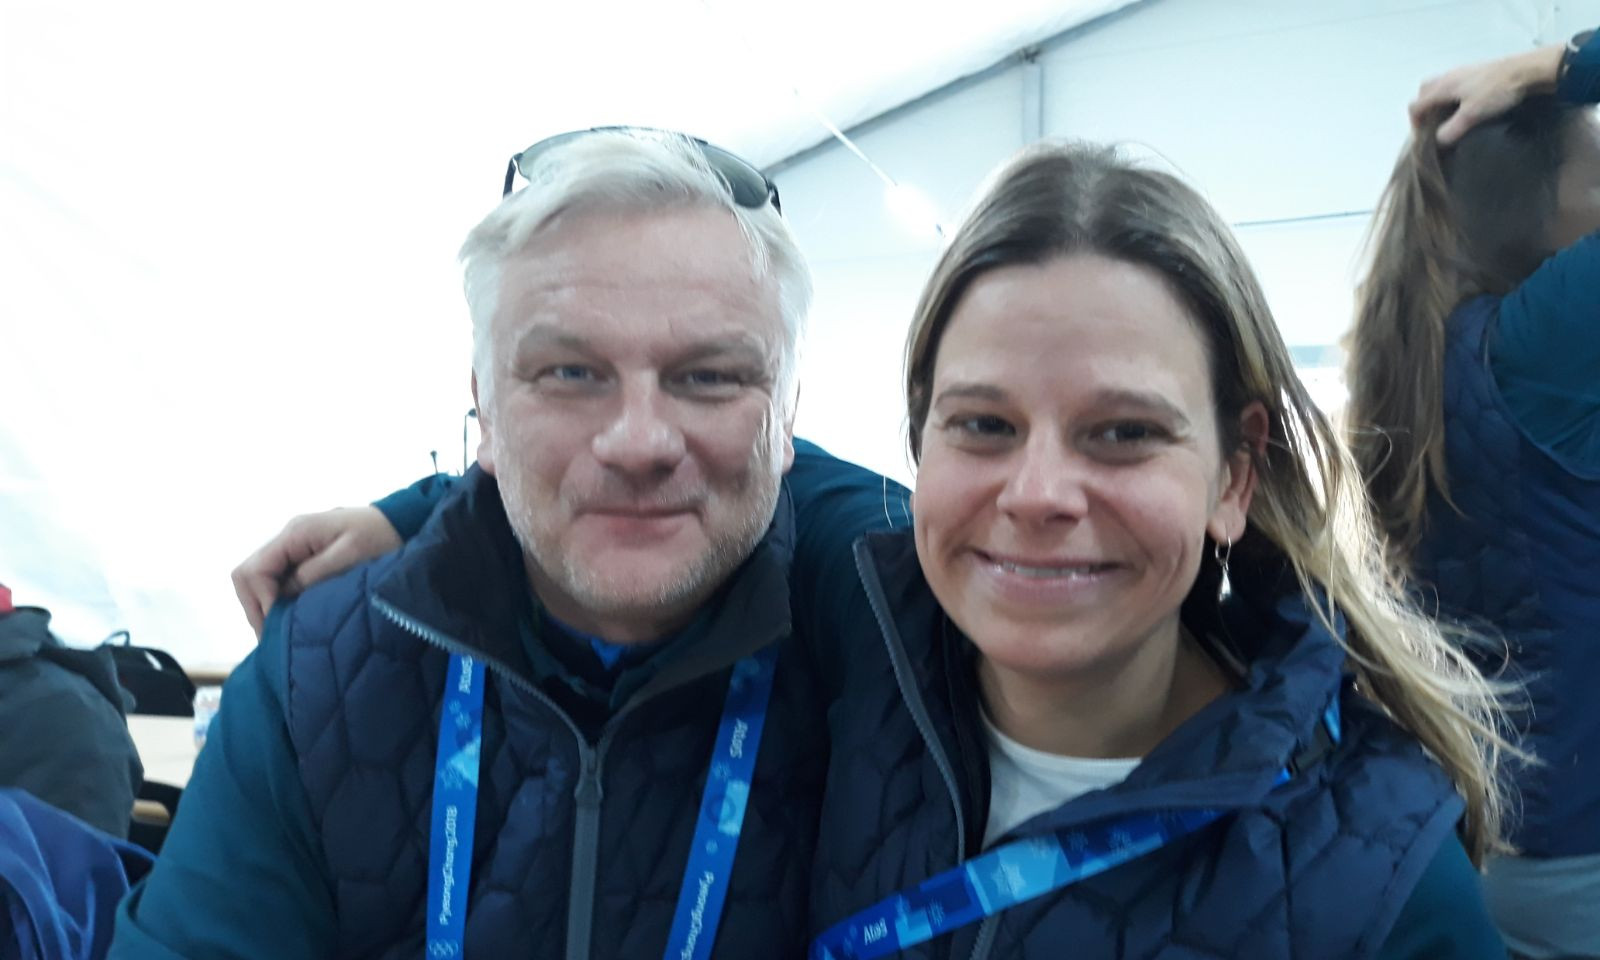 With my dear colleague and friend Björn Bjorklund (former Swedish Alpine Skier)